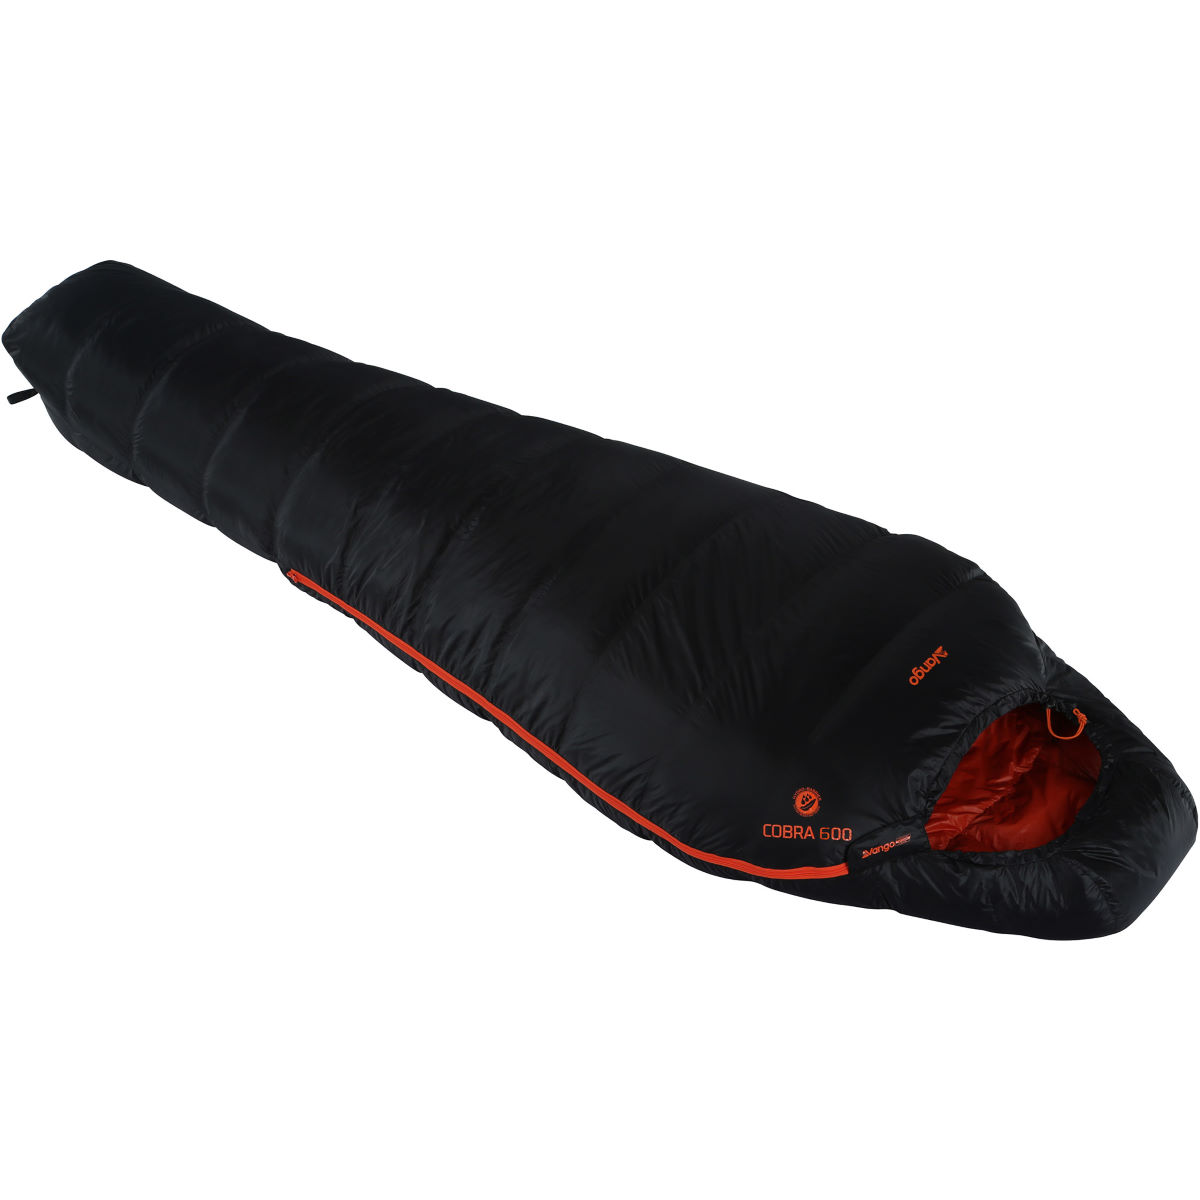 Vango Vango Cobra 600 Sleeping Bag   Sleeping Bags